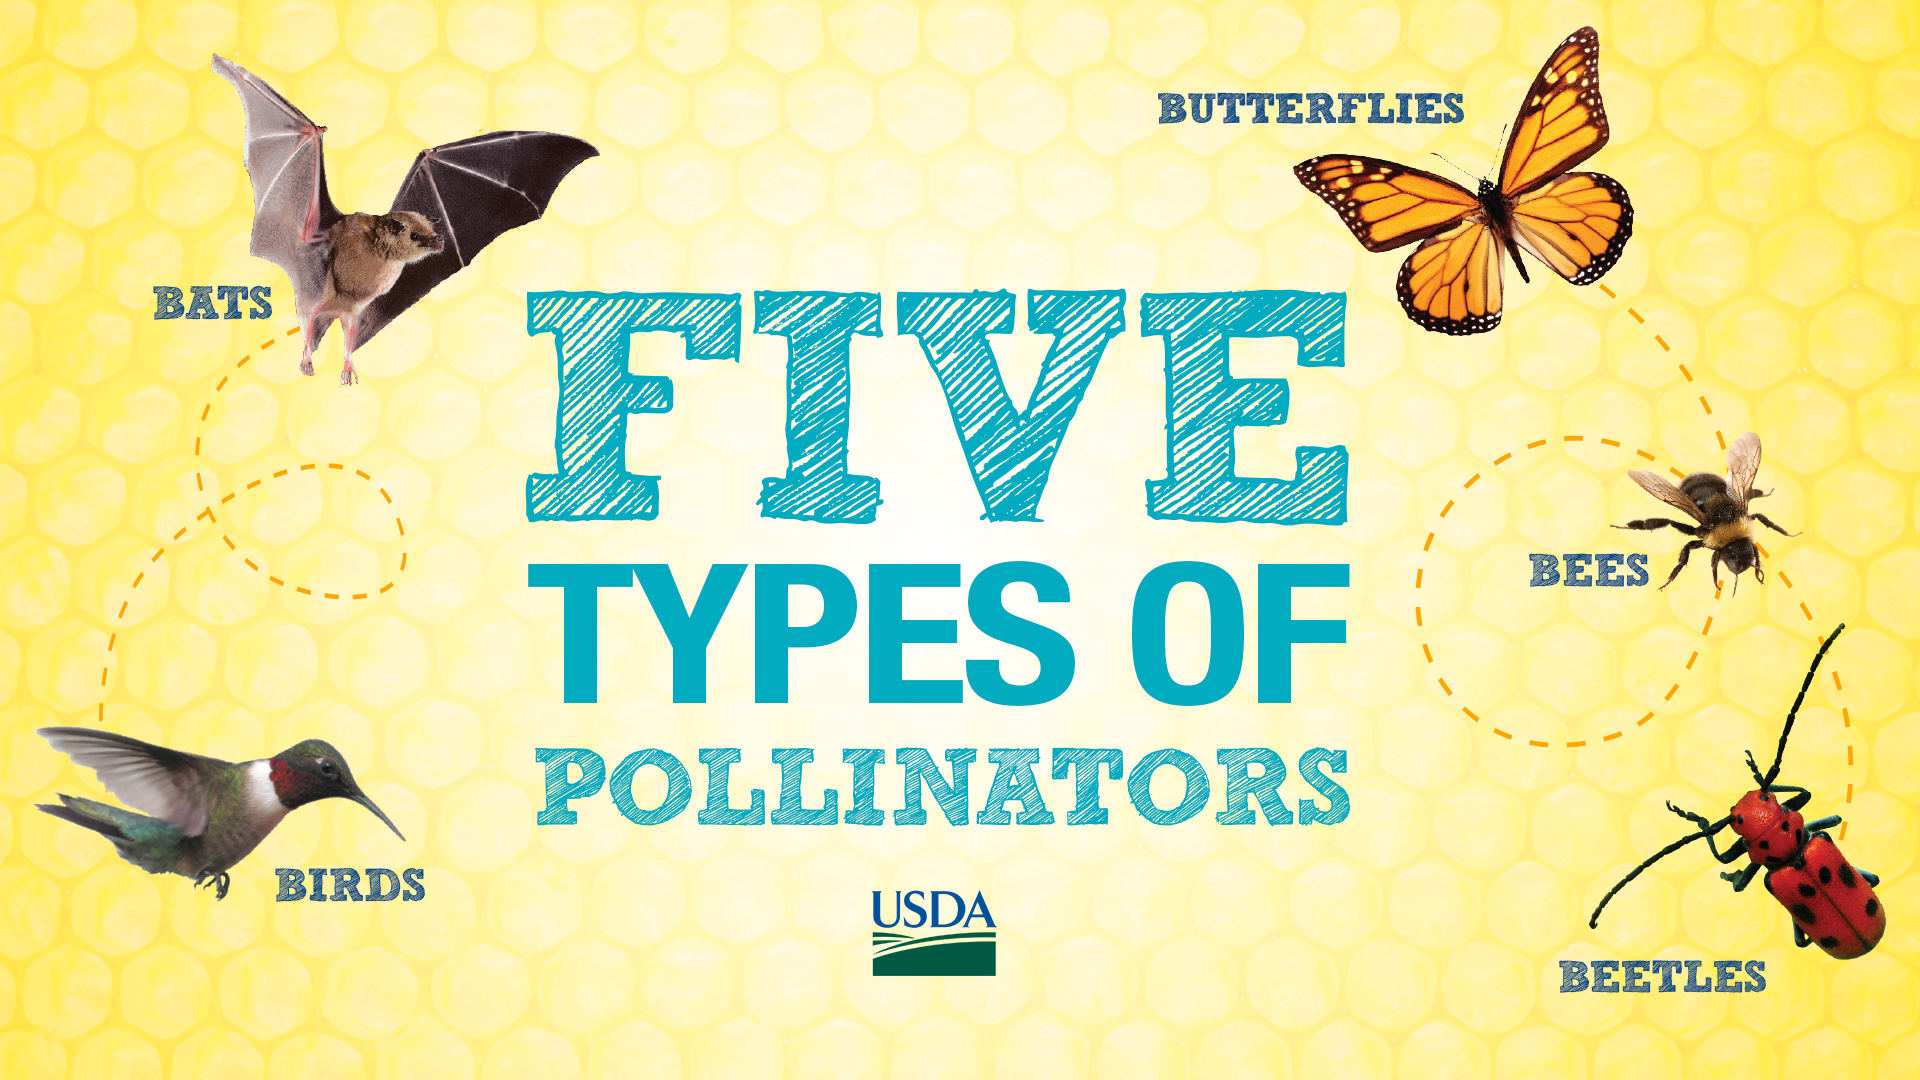 Five Types of Pollinators - Birds, Bats, Butterflies, Bees, Beetles